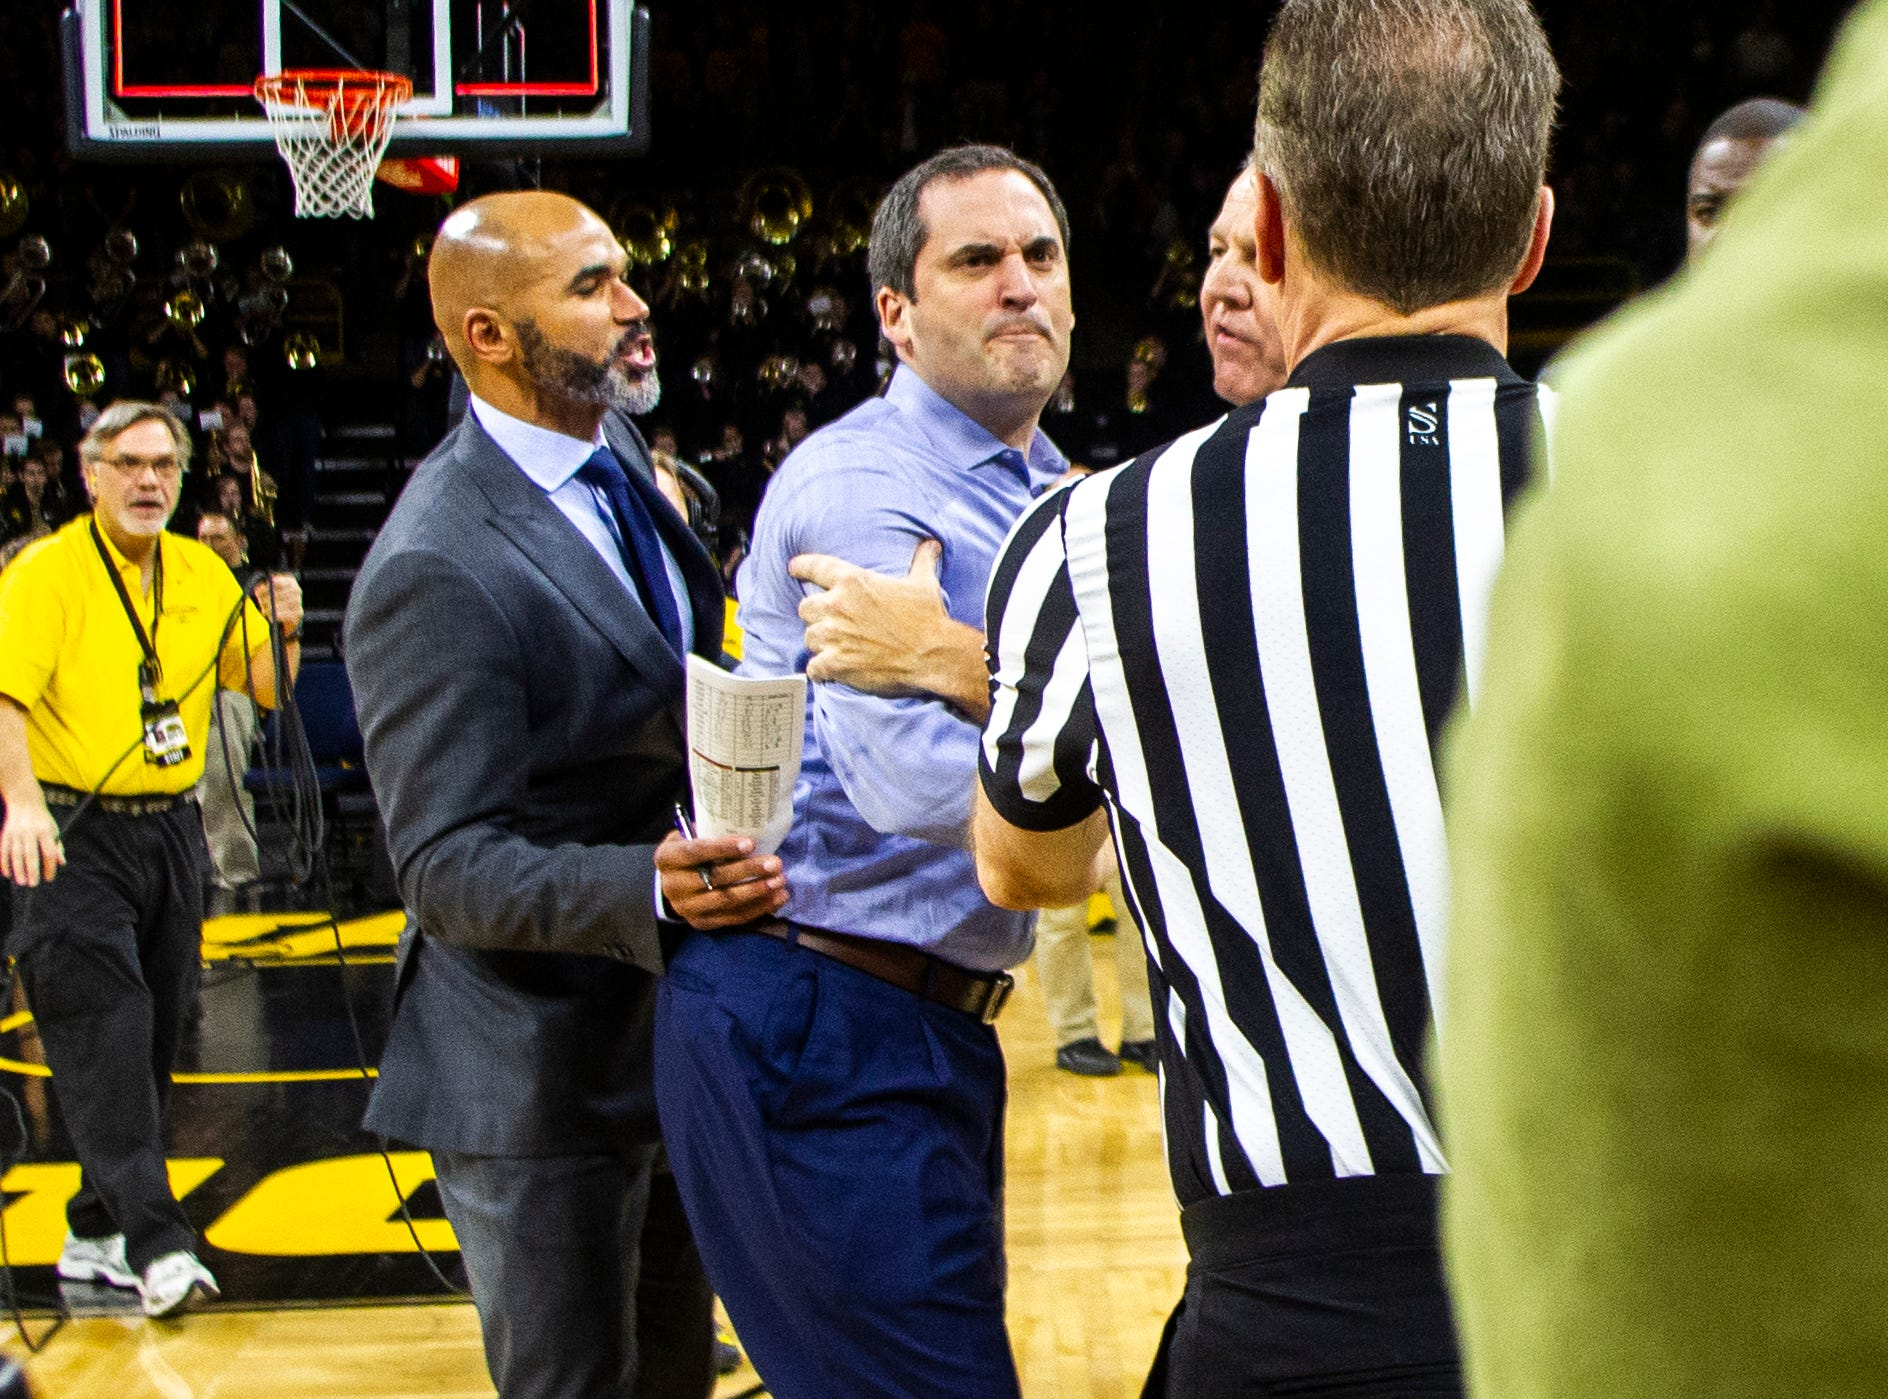 Iowa State head coach Steve Prohm gets held back by officials after the buzzer a NCAA Cy-Hawk series men's basketball game on Thursday, Dec. 6, 2018, at Carver-Hawkeye Arena in Iowa City.